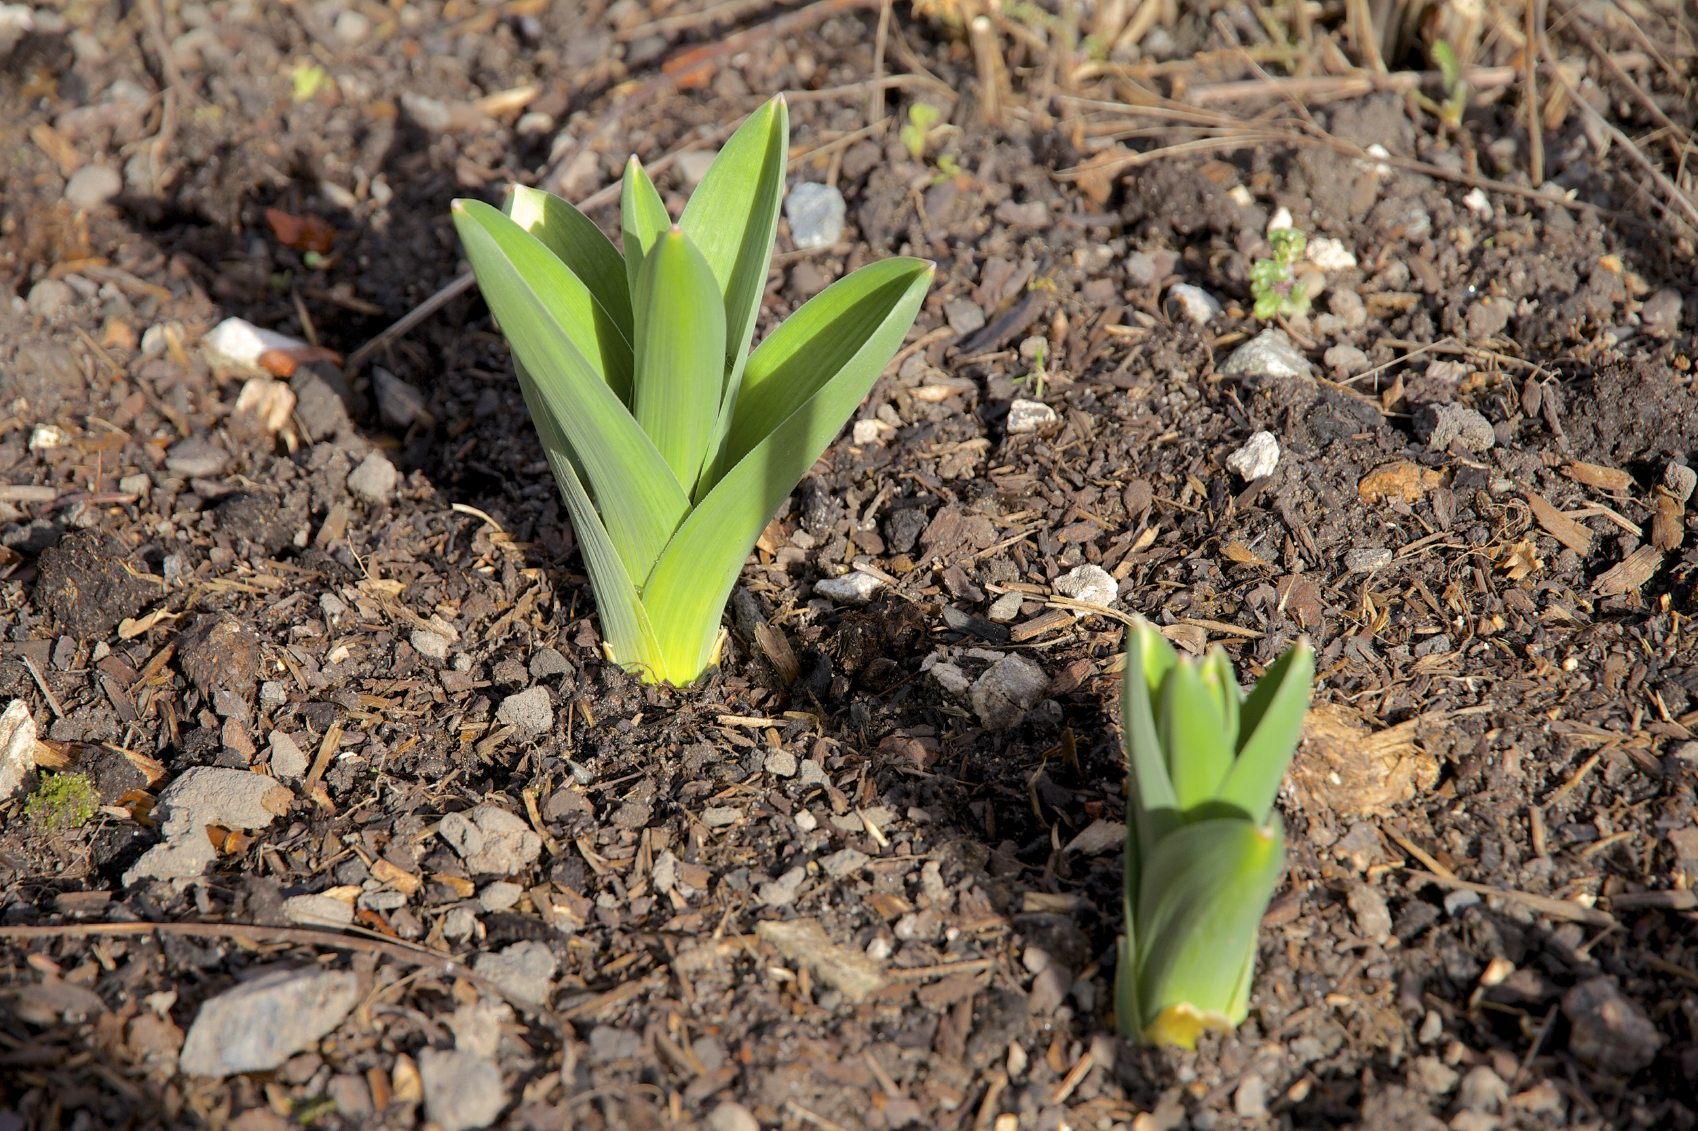 Info On Spring Bulb Flowers How Long Does It Take For Bulbs To